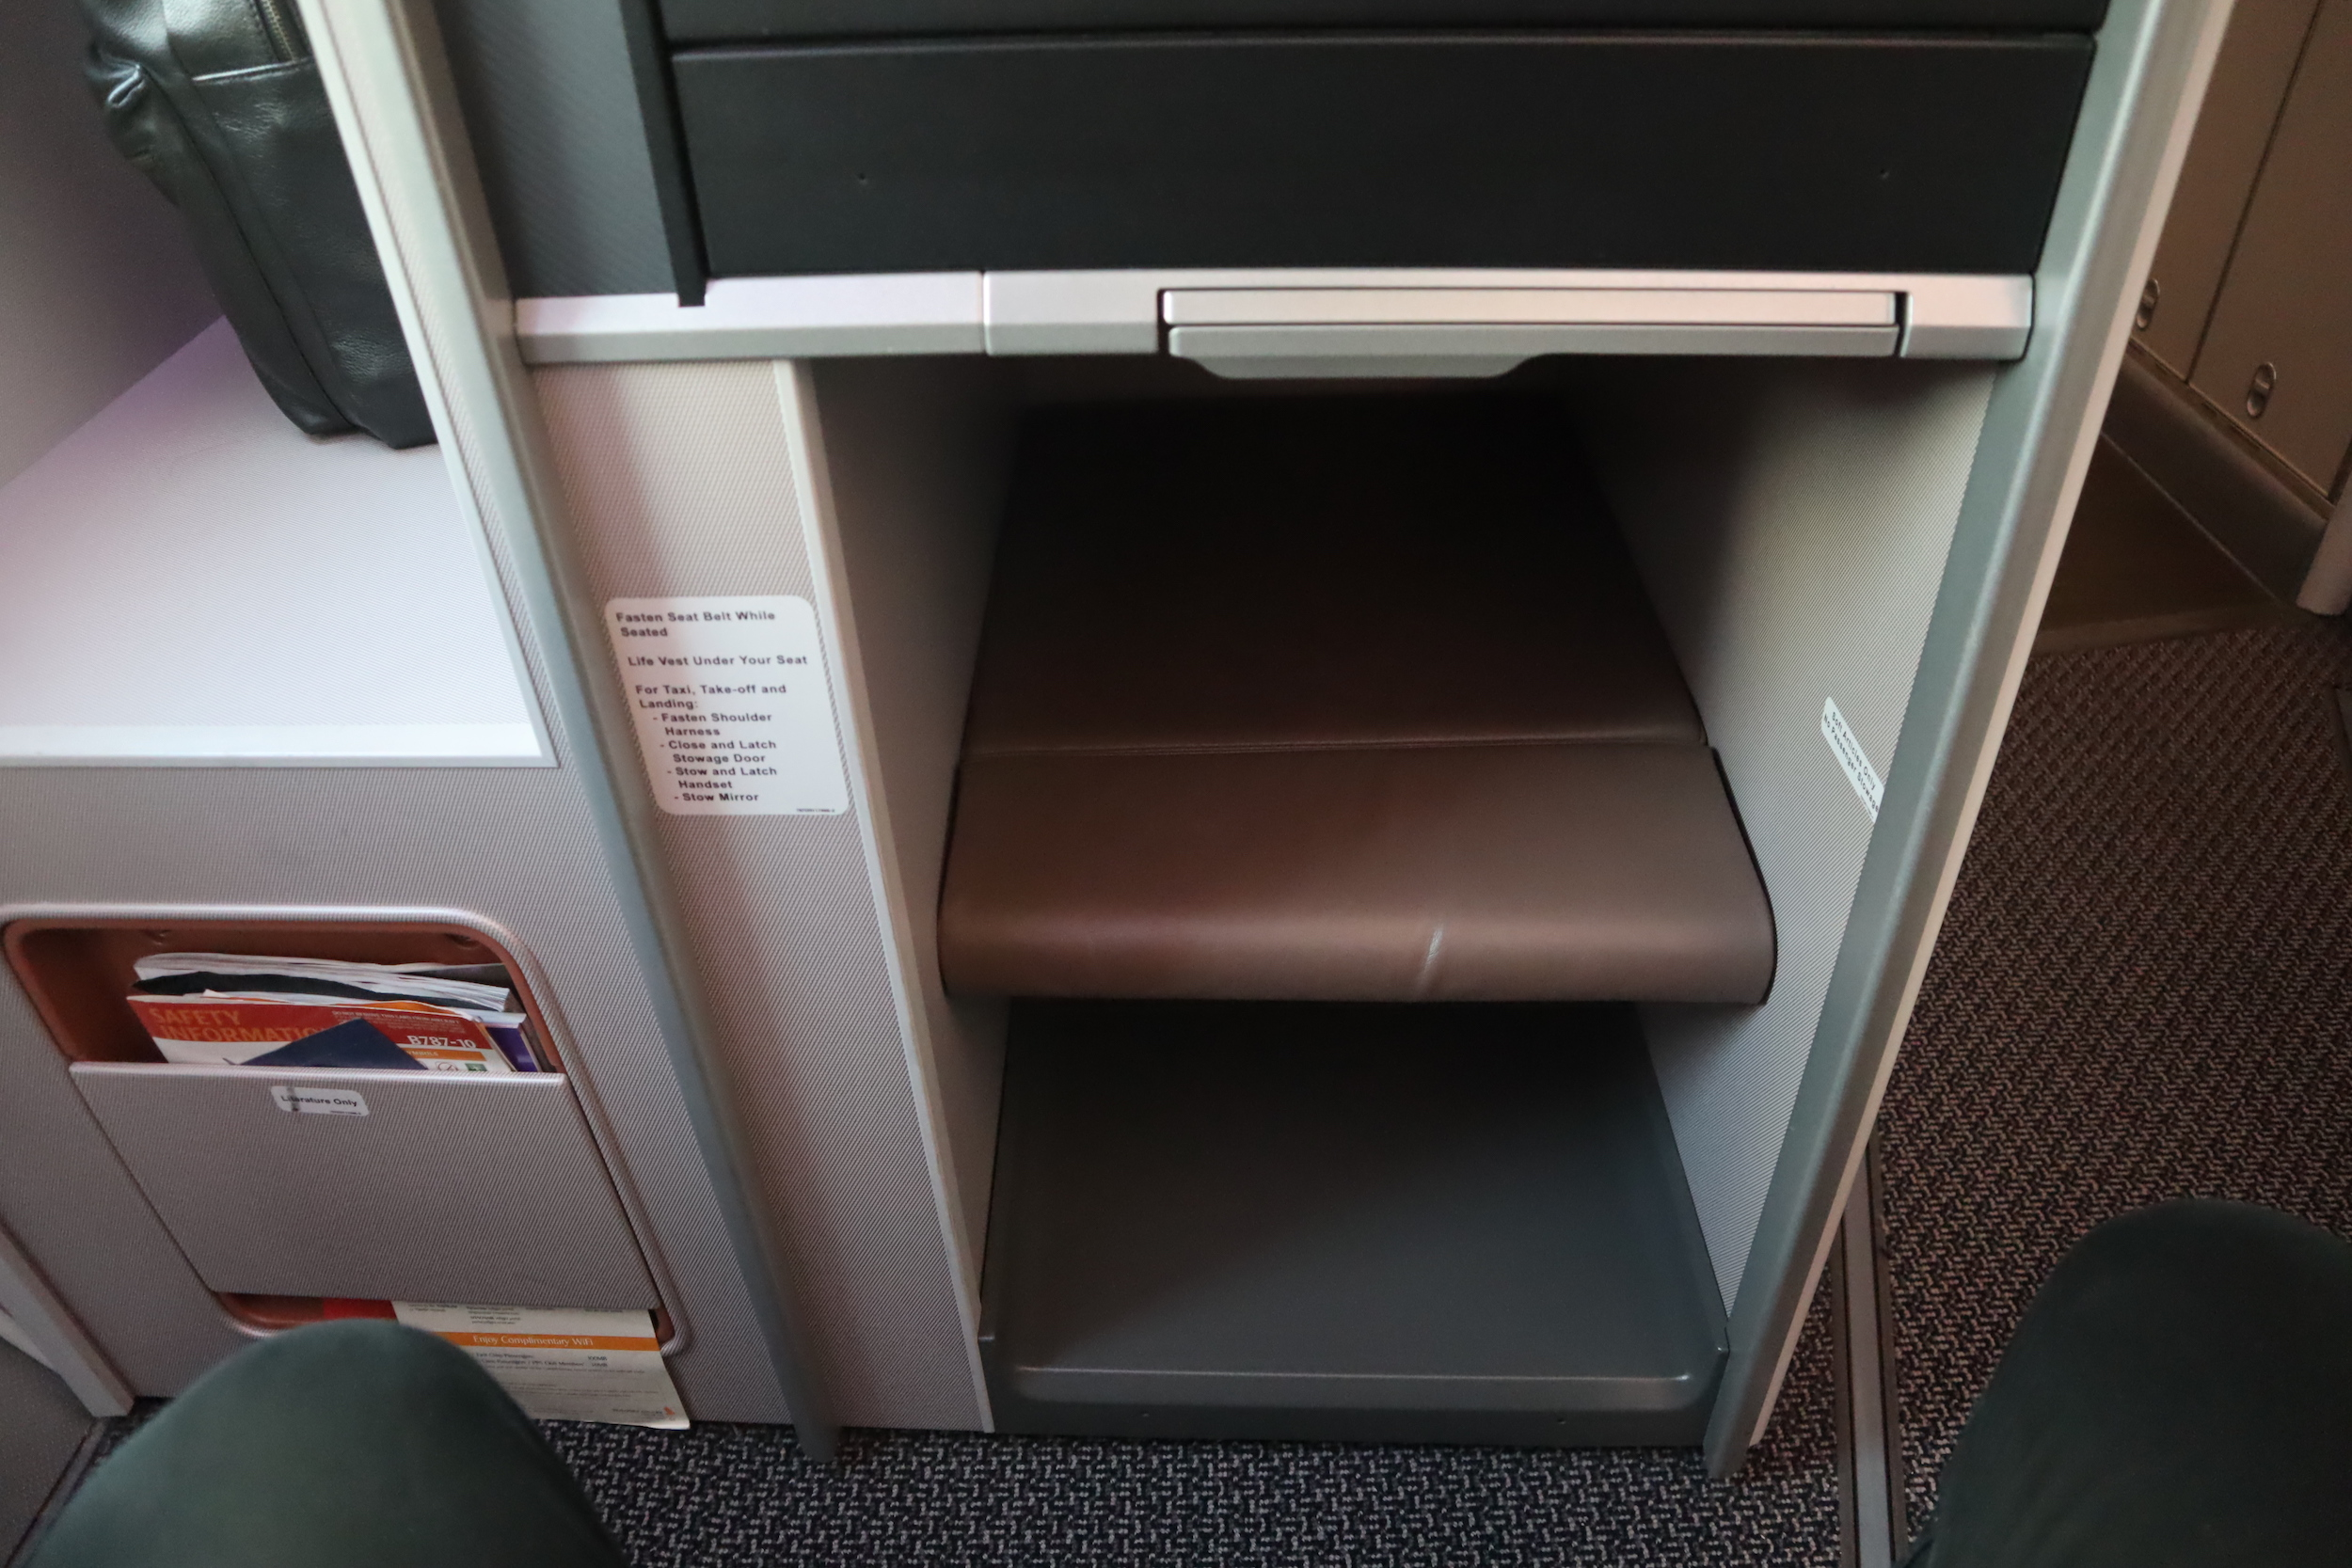 Singapore Airlines 787-10 business class – Footwell